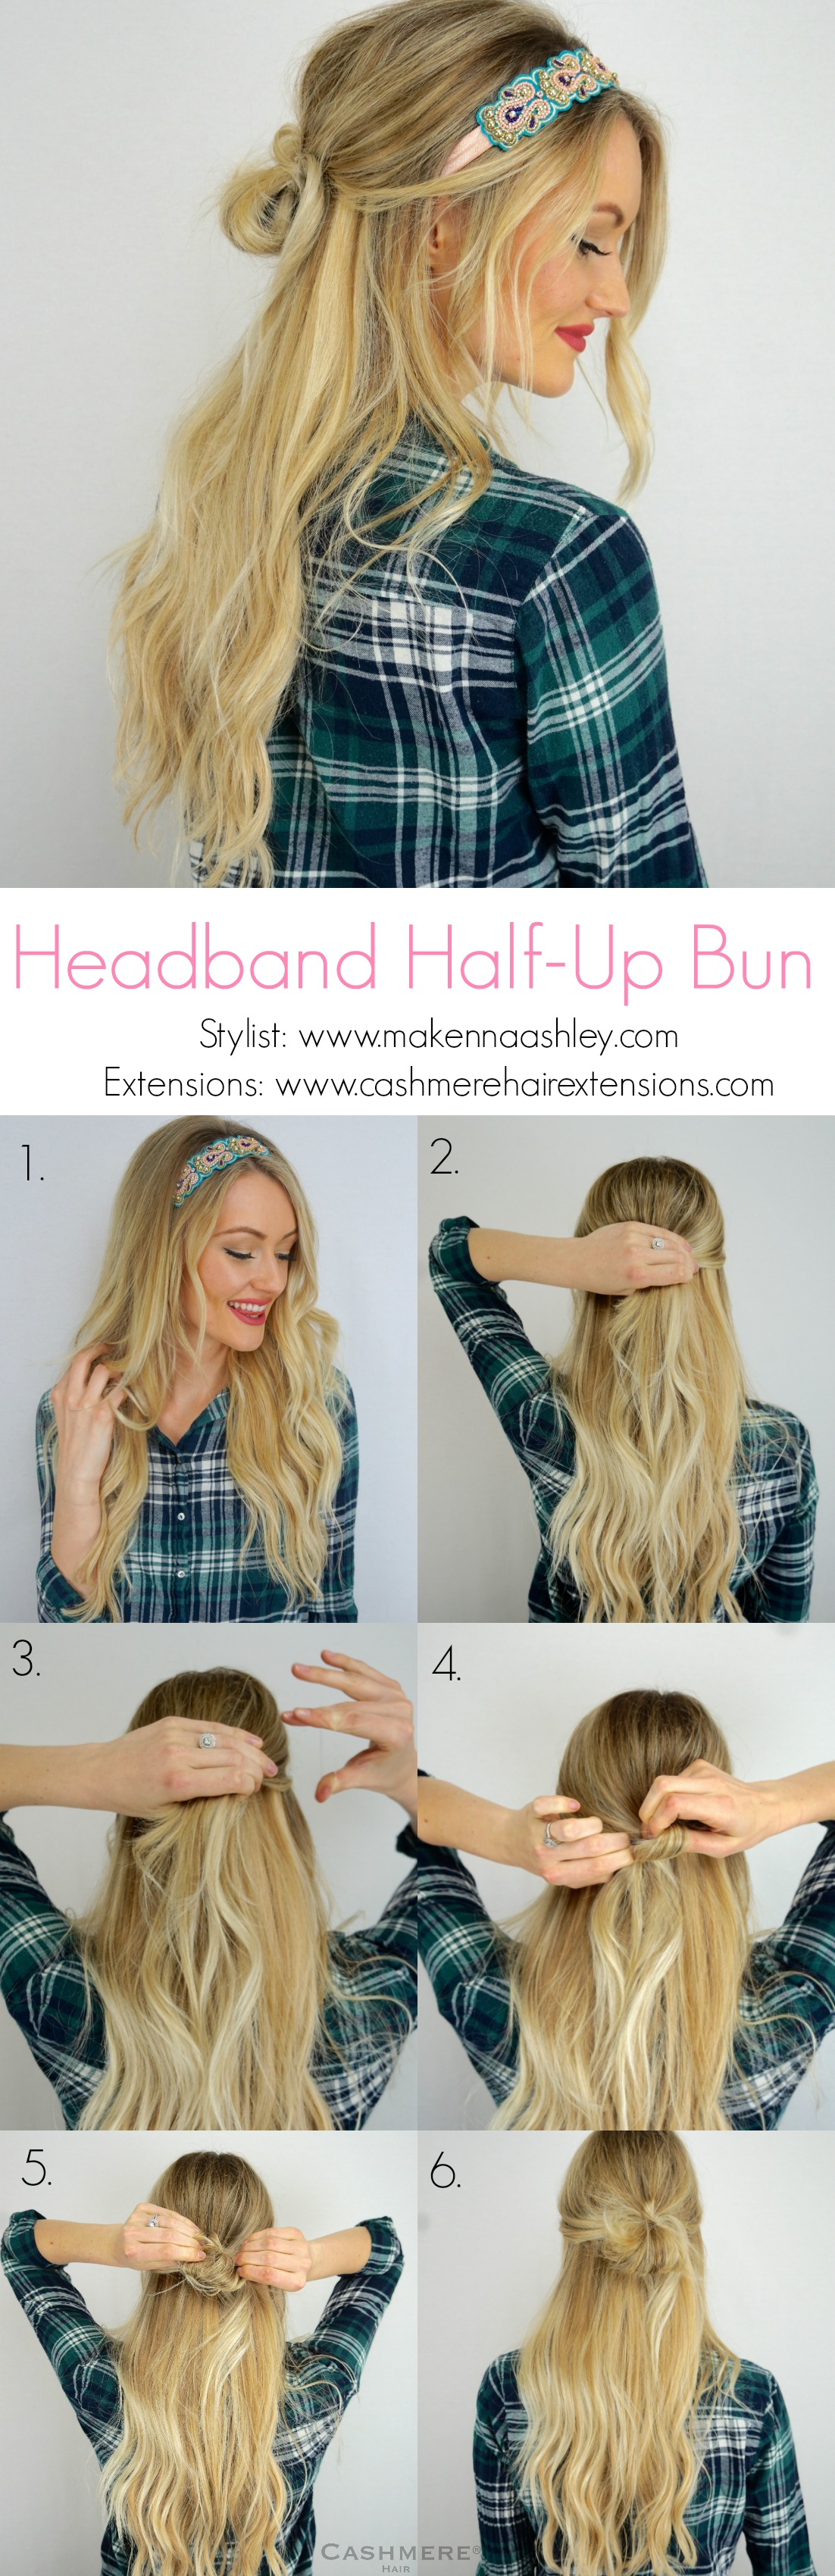 45++ Quick hairstyles with clip in extensions ideas